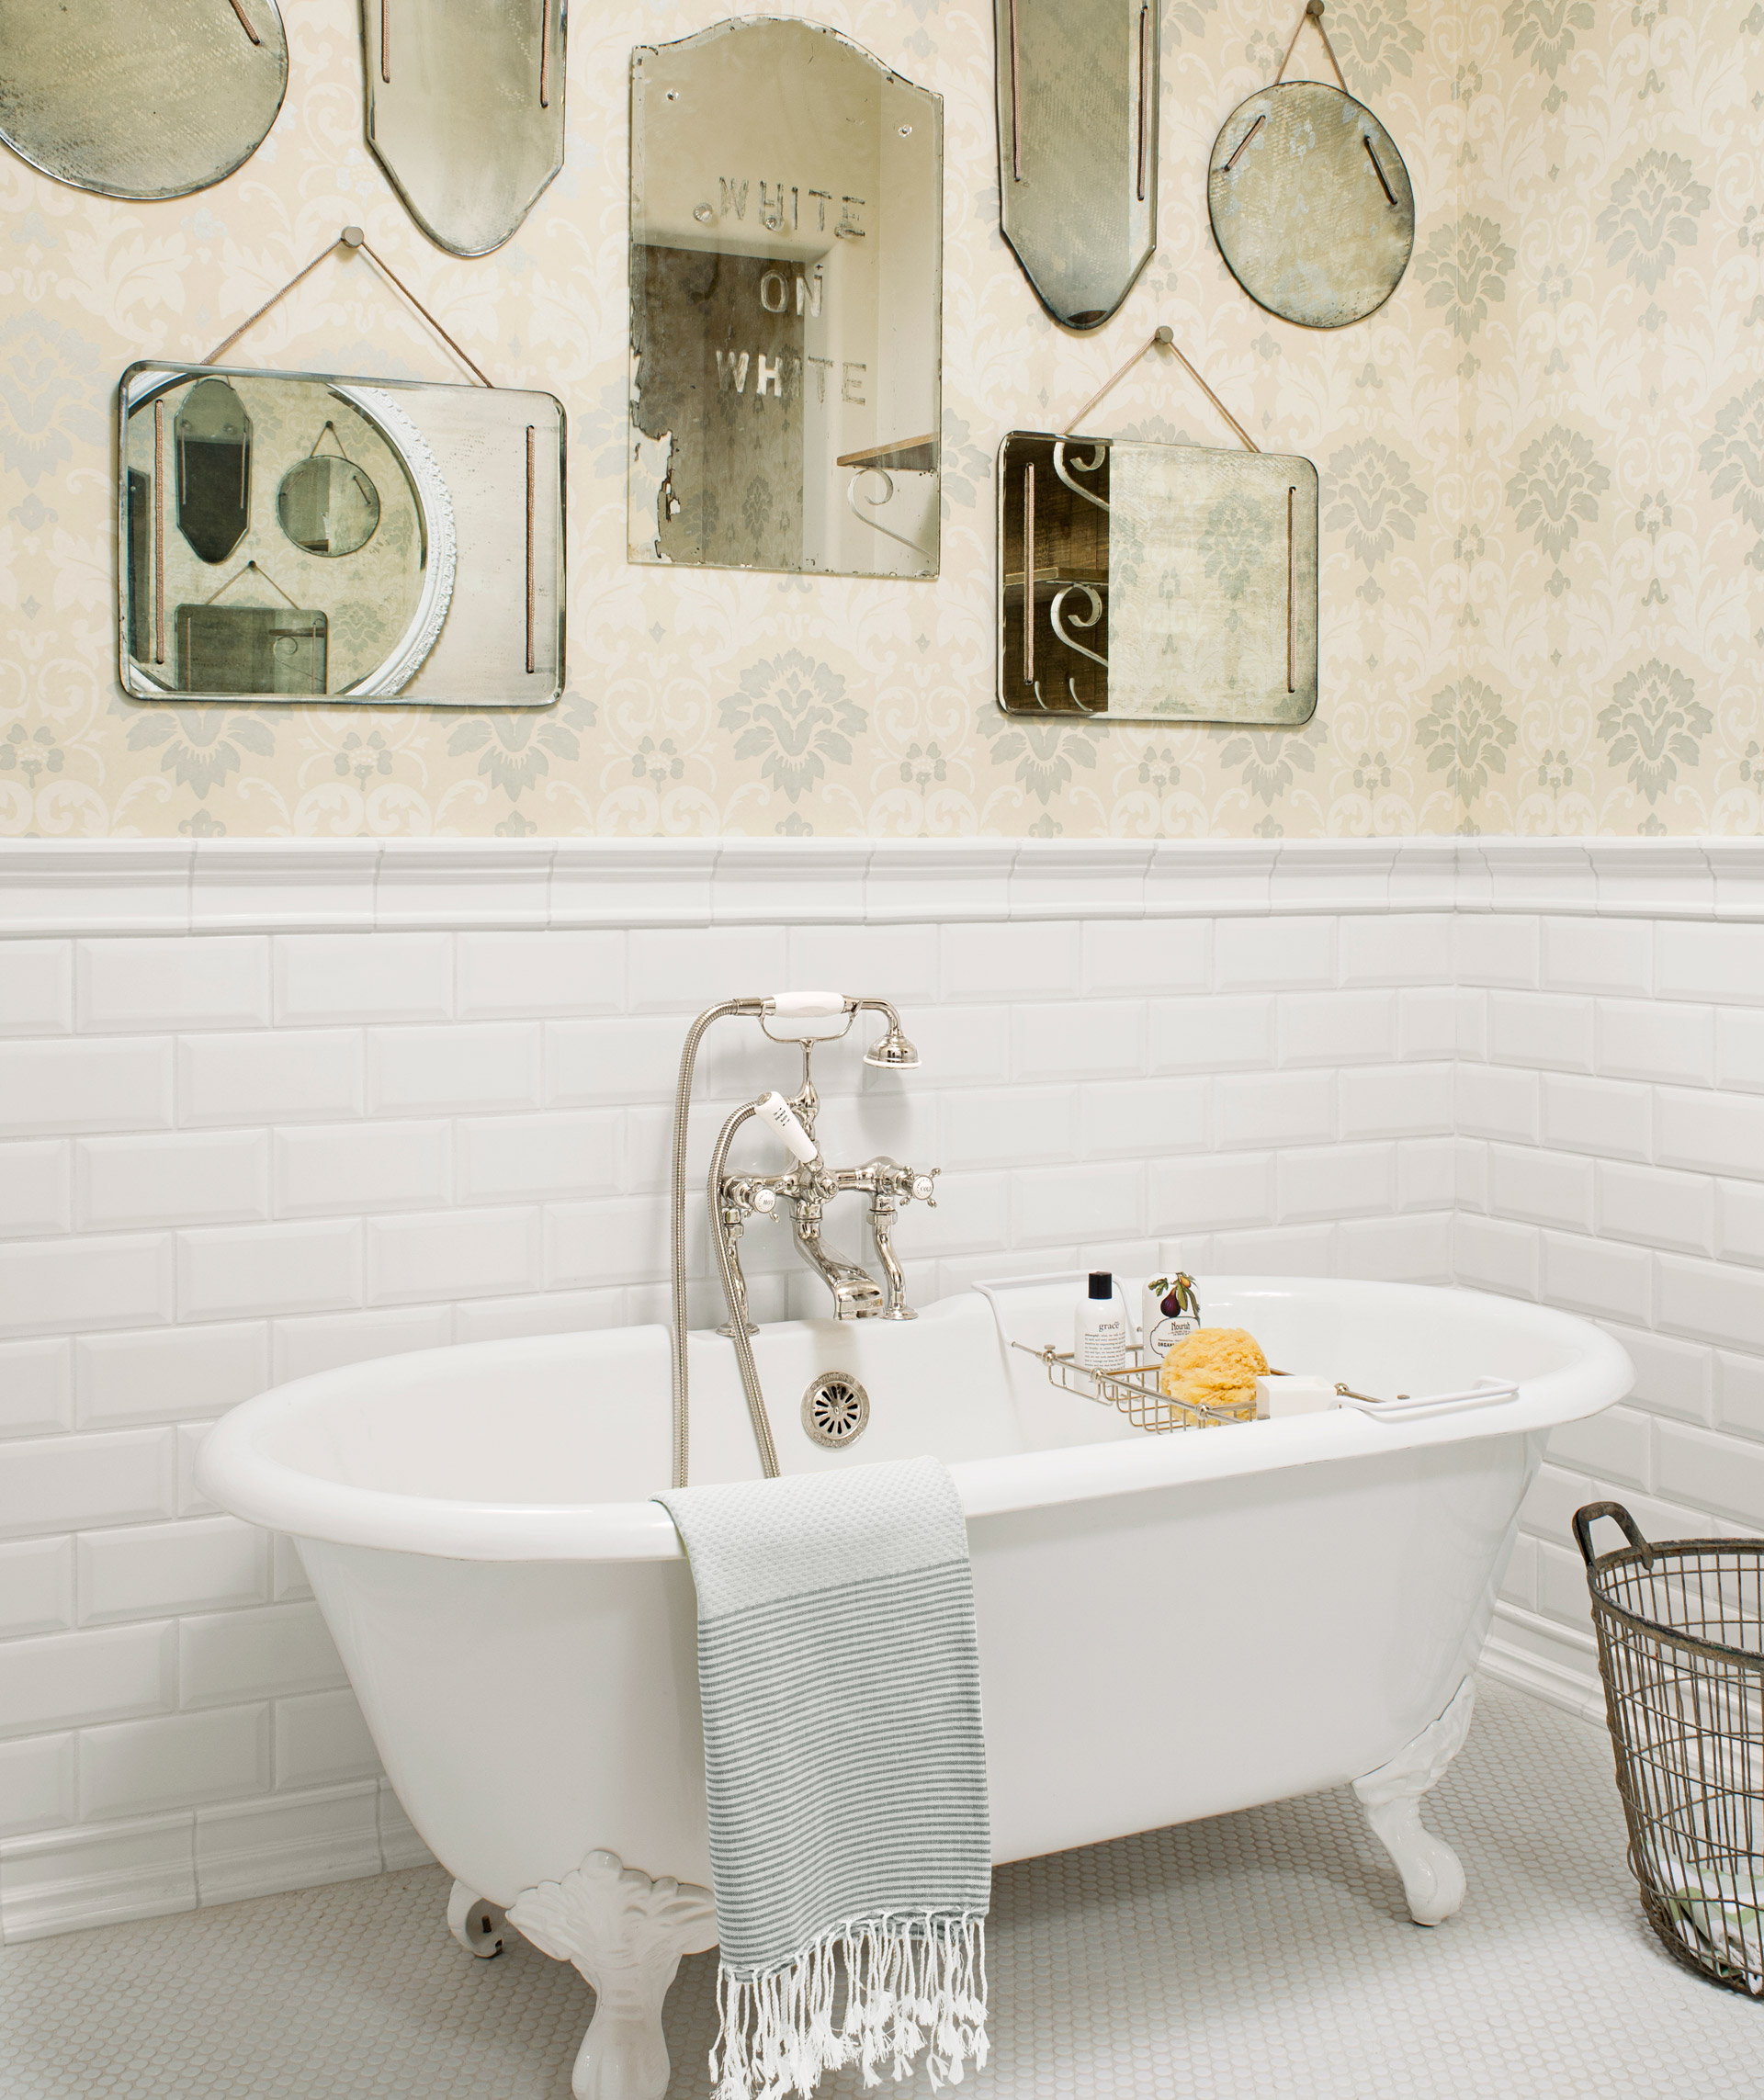 Bathroom Decorating Ideas Vintage 90 best bathroom decorating ideas - decor & design inspirations